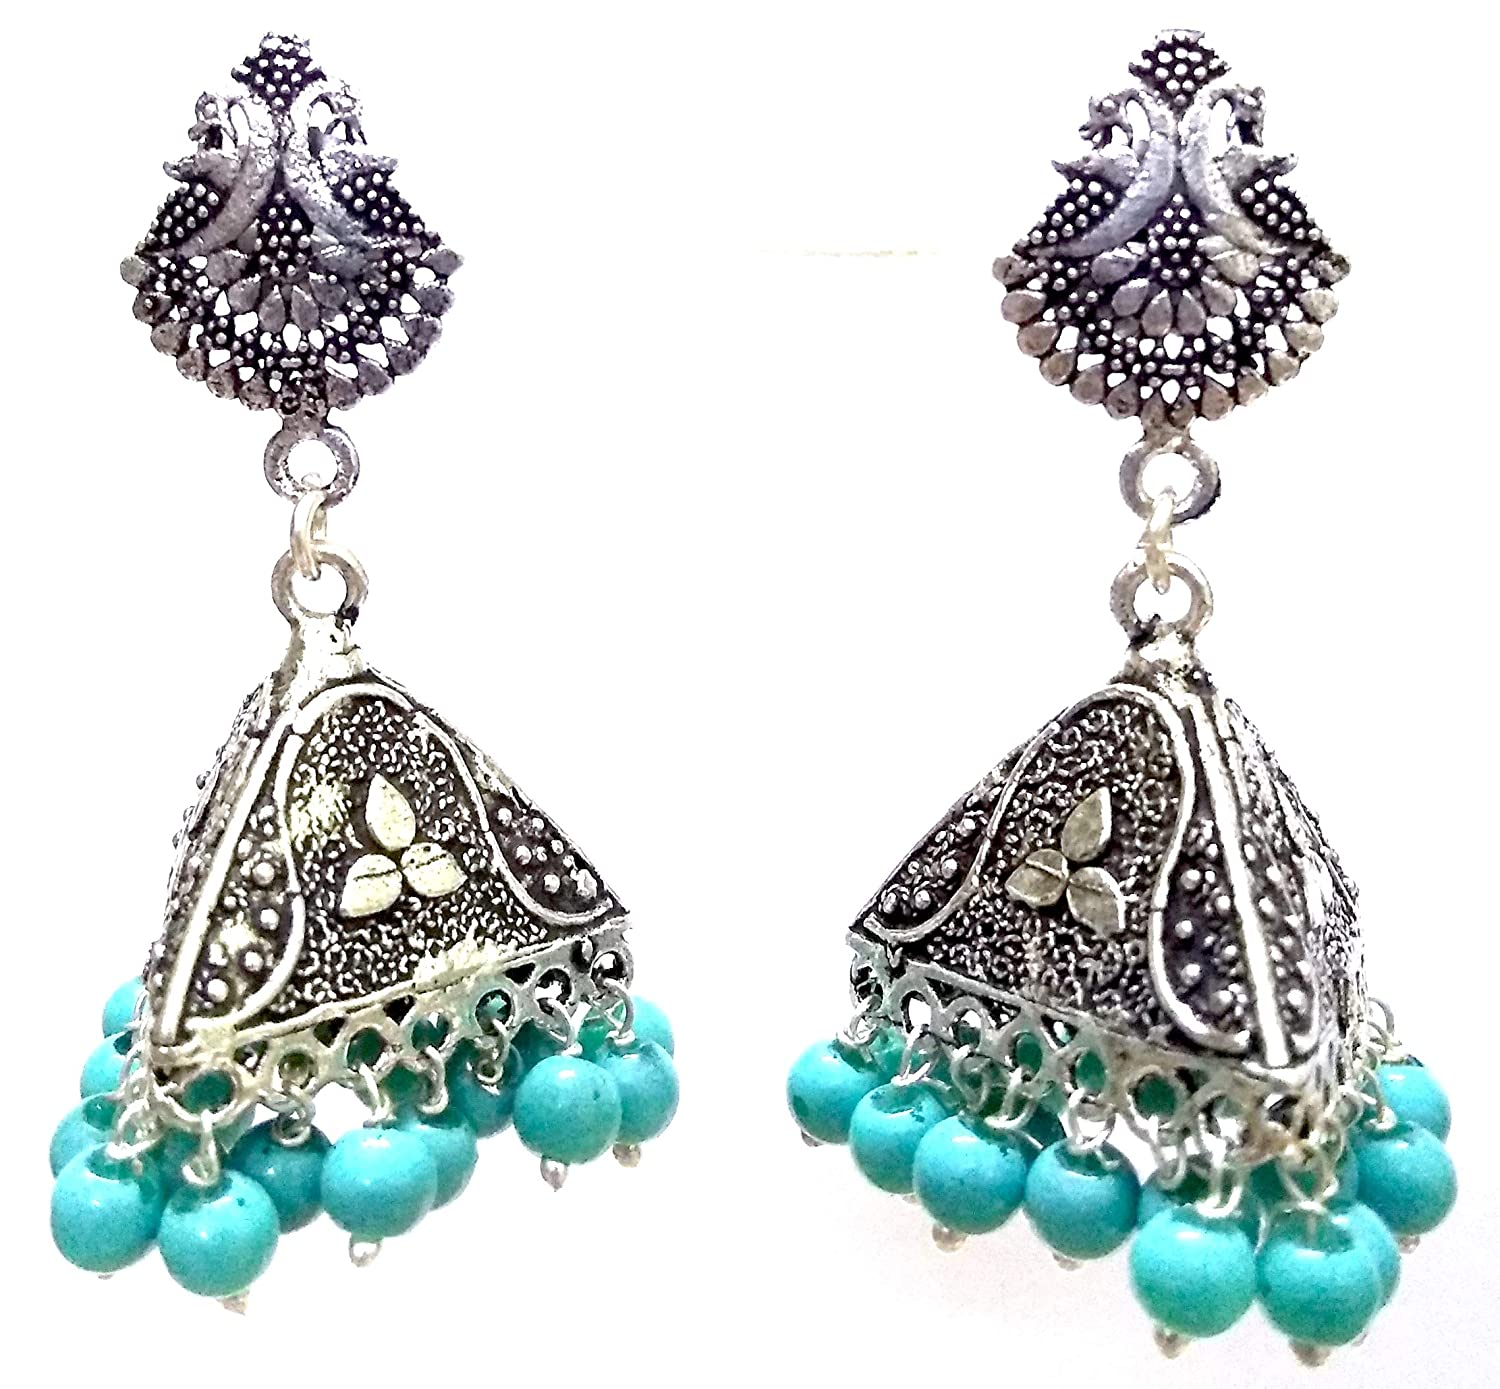 DESI HAWKER Silver Oxidized Earring Bali Jhumki Jhumka Jewelry Bollywood Drop Dangle Pyramid Chandelier Peacock NI-160